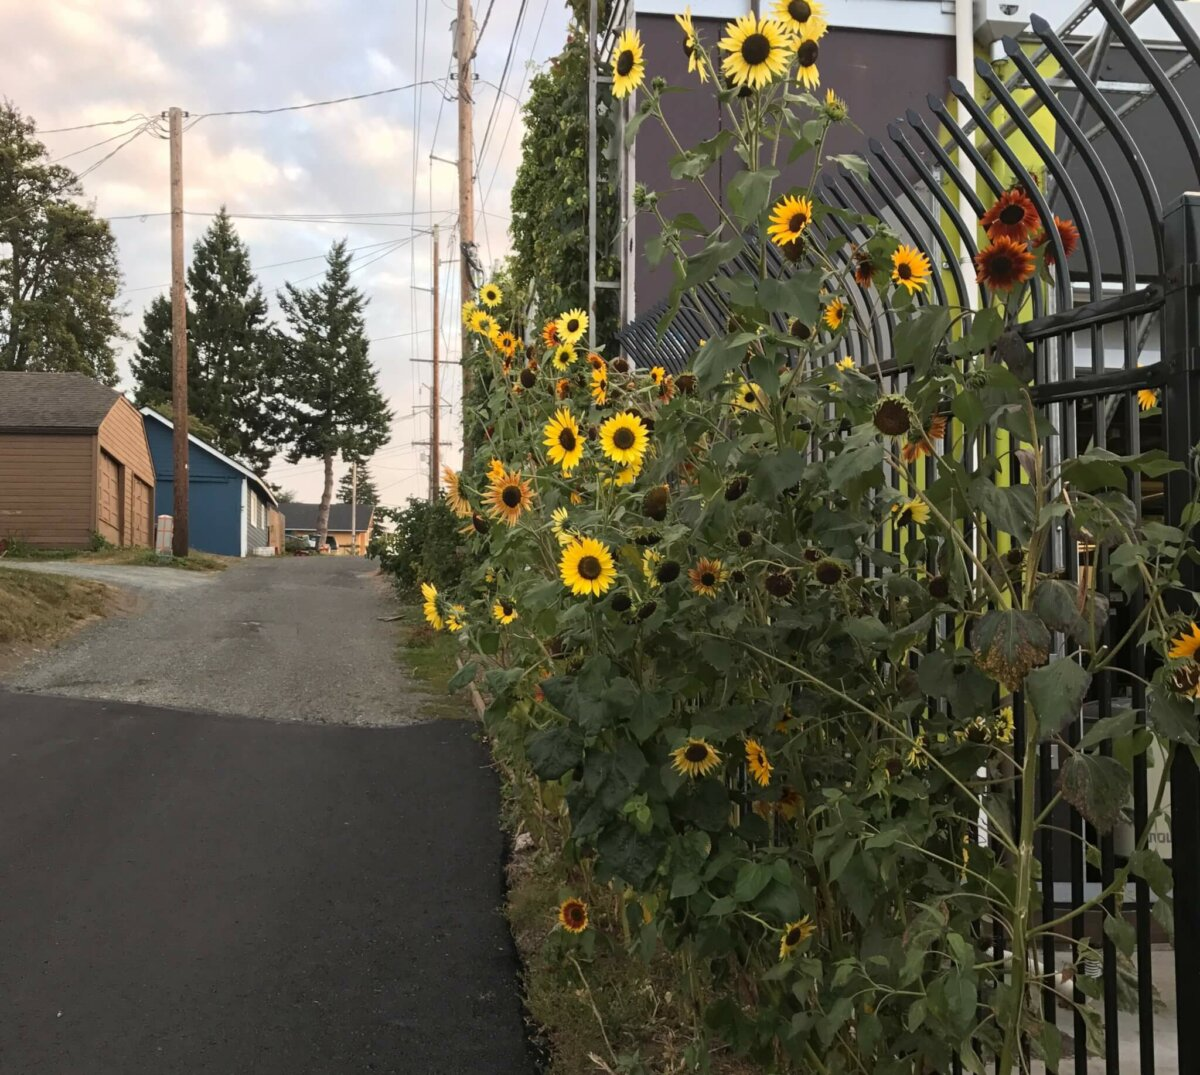 sunflower on fence line